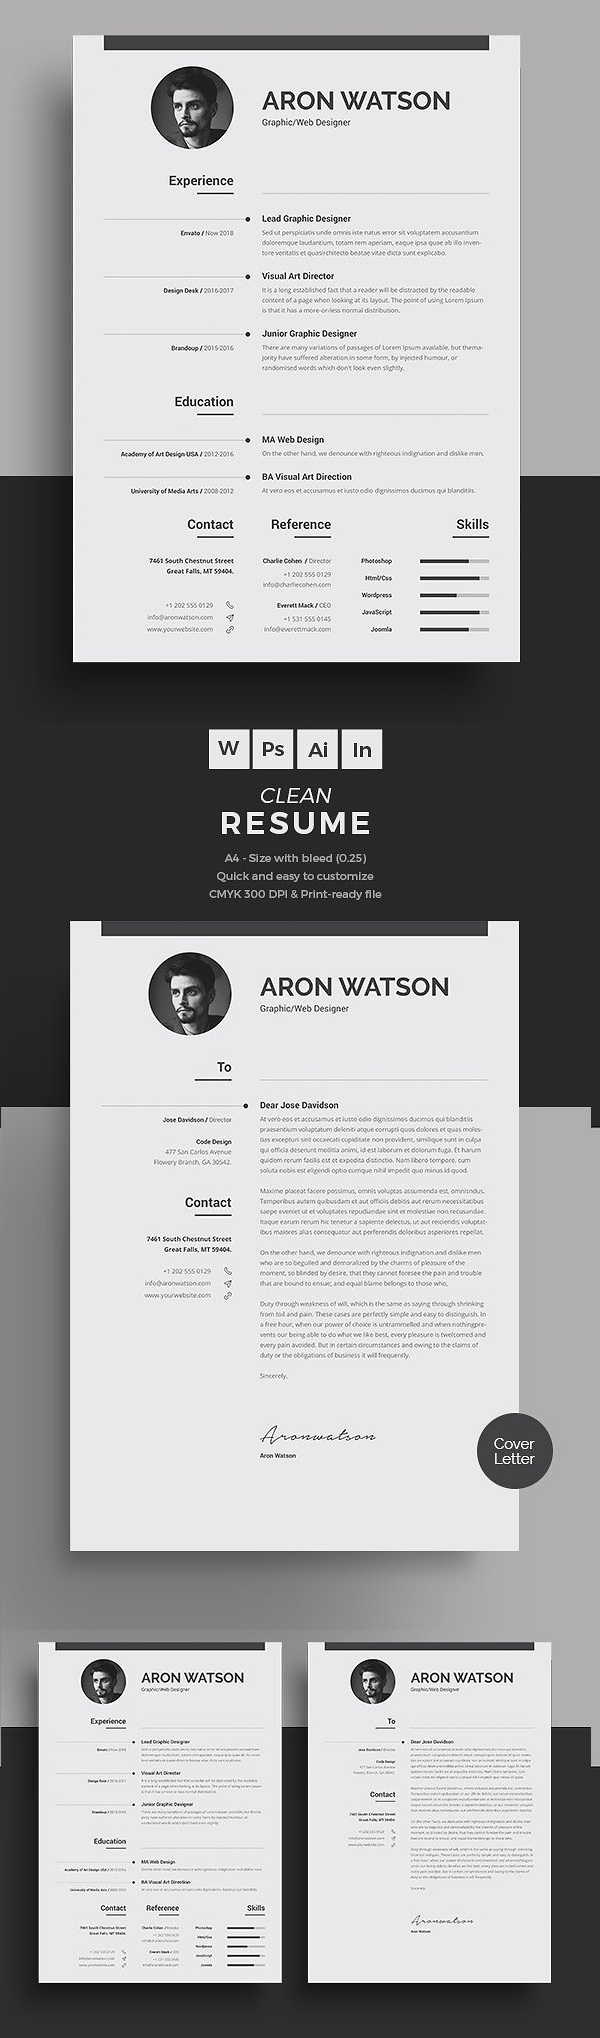 best minimal resume templates design graphic junctiongraphic junction minimalist word Resume Minimalist Word Resume Template